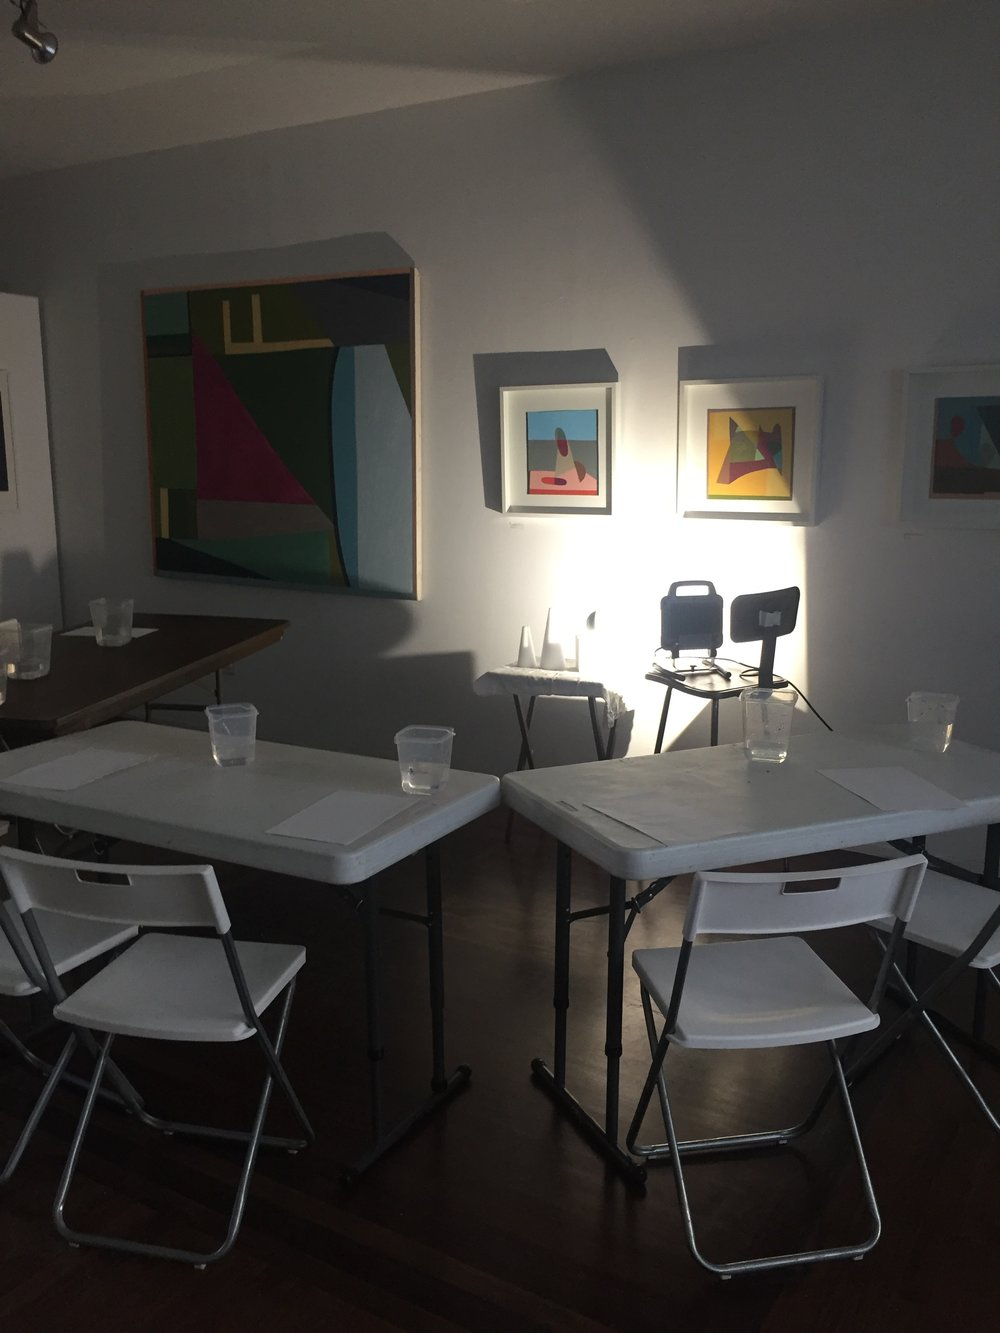 each class is different - We do a different painting activity in each class. From a black and white study to learn shadow and light to painting a landscape that matters to you, each class is different. Because learning the basics does not have to be boring.